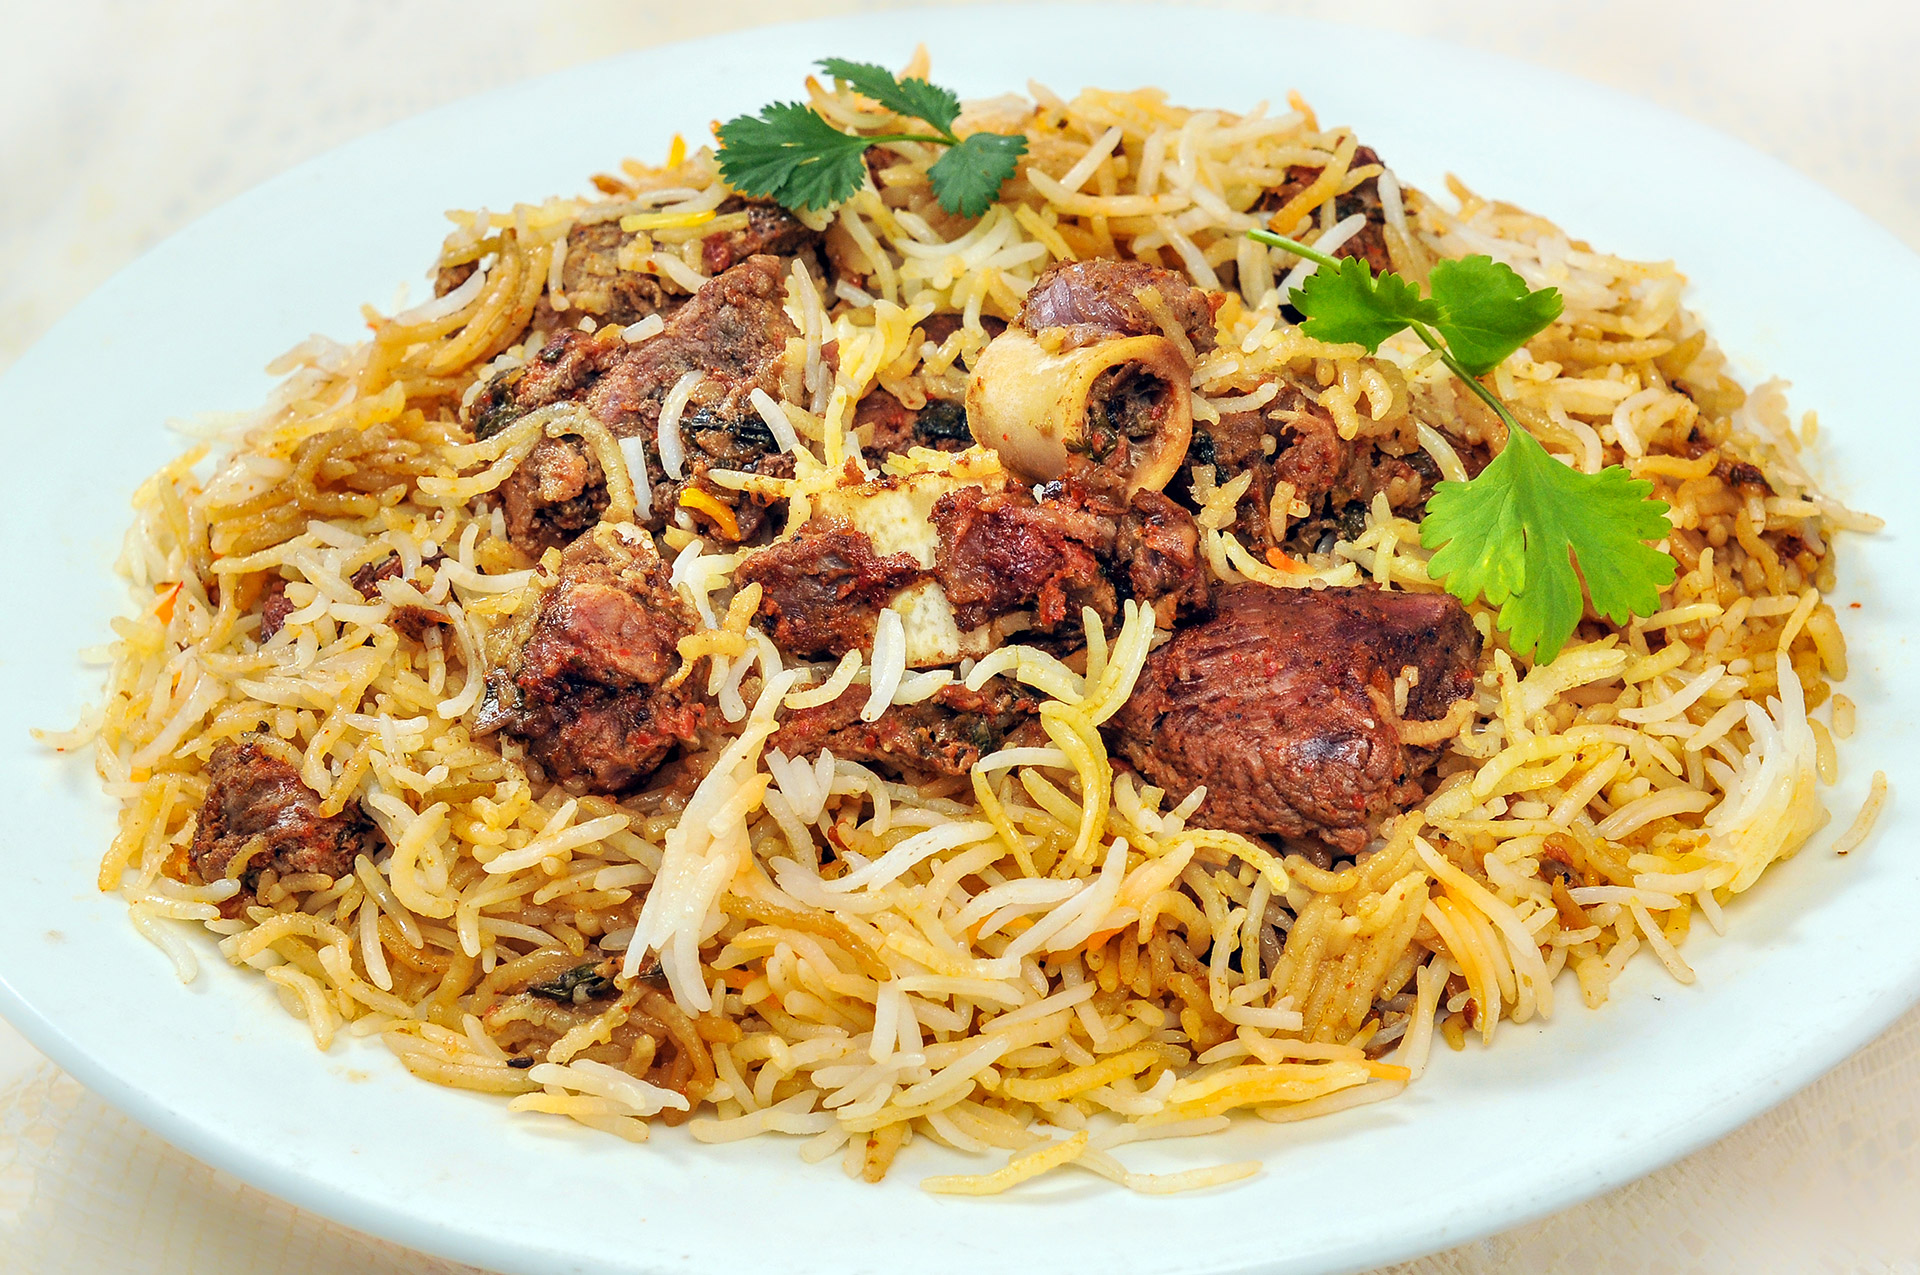 My favorite food dish biryani, Essay Sample - tete-de-moine com